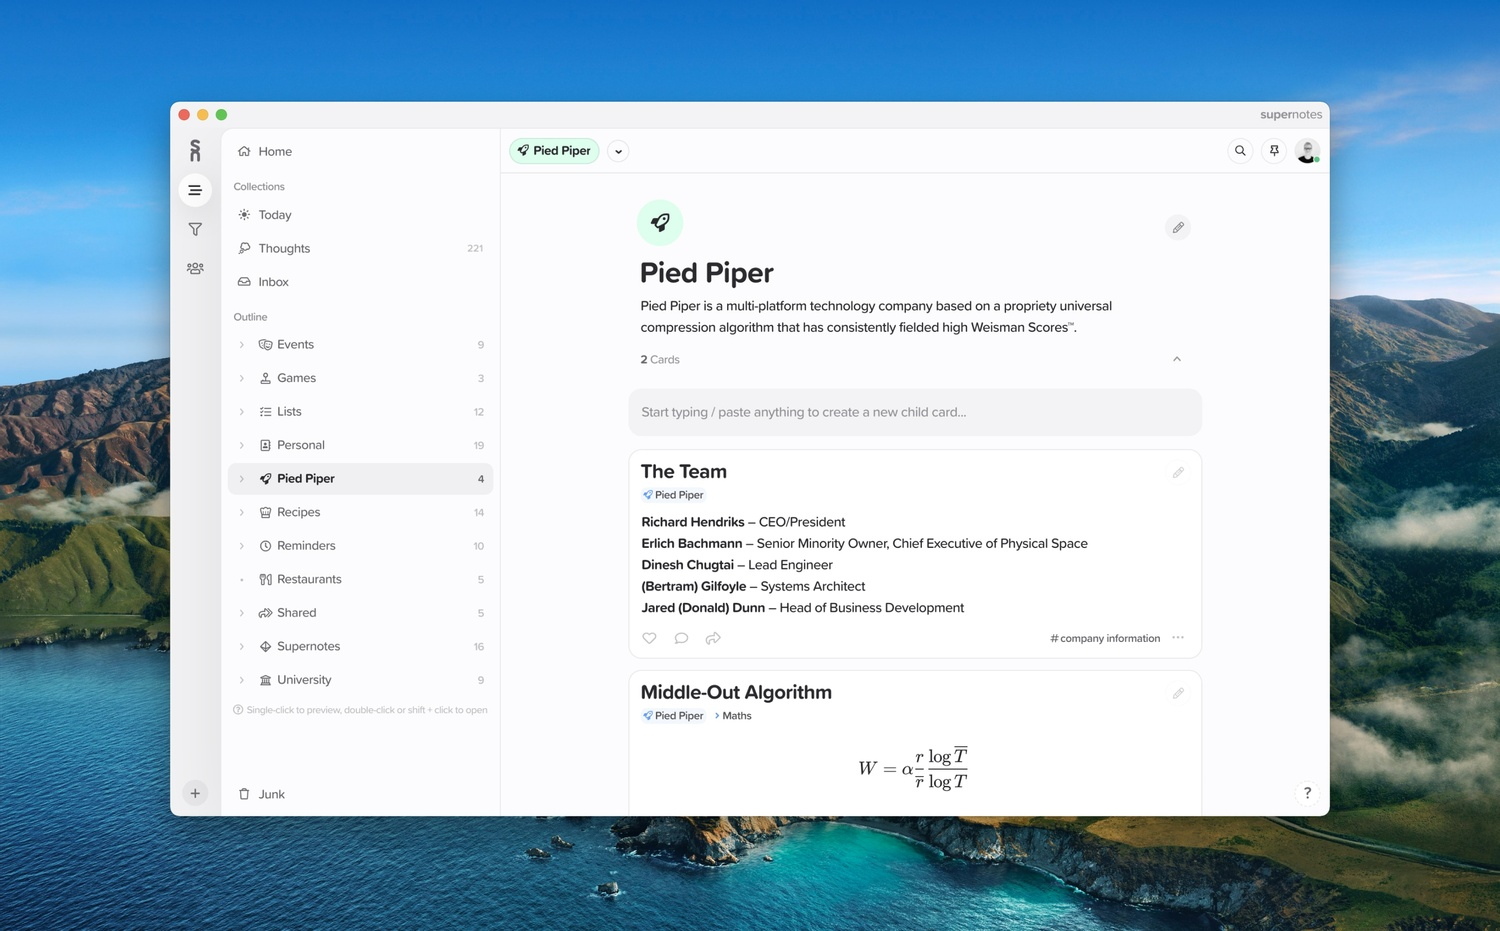 Desktop Apps Early Access 🖥 - Supernotes